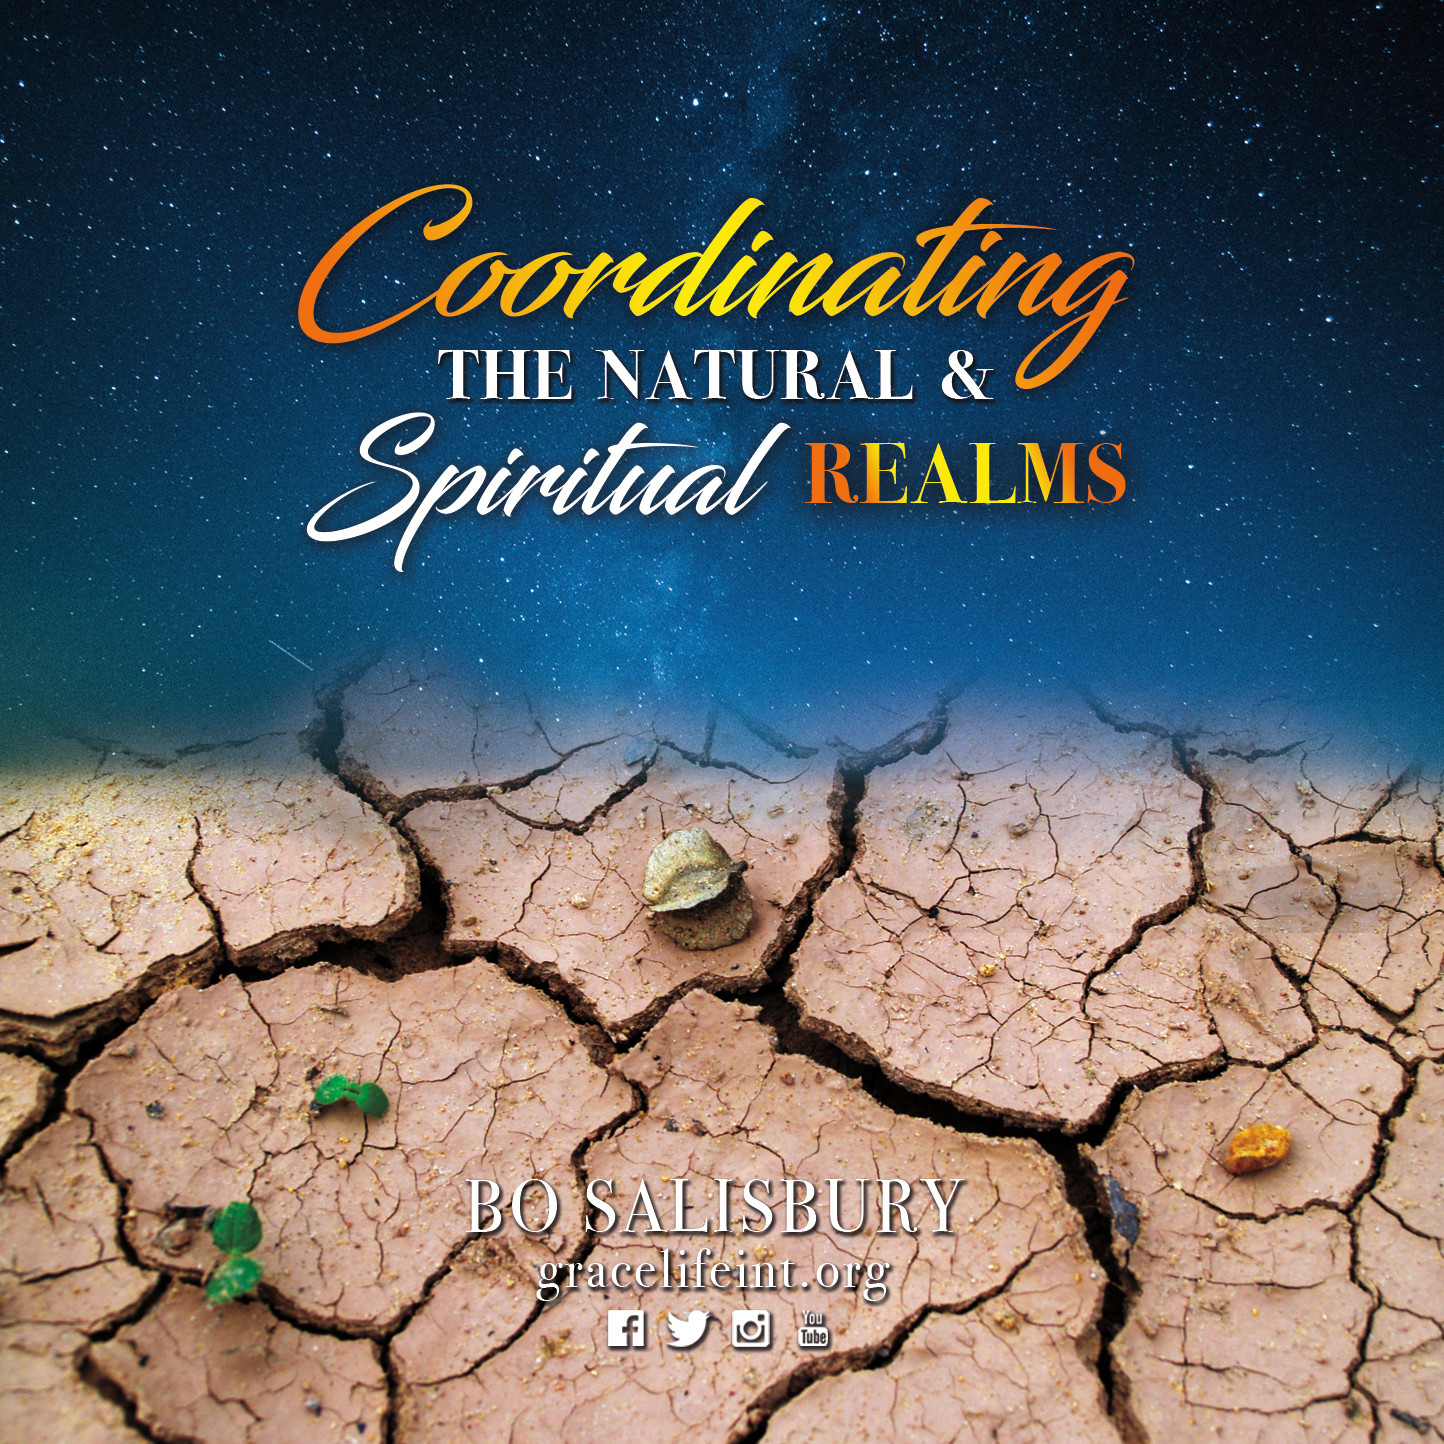 Coordinating the Natural and Spiritual Realms